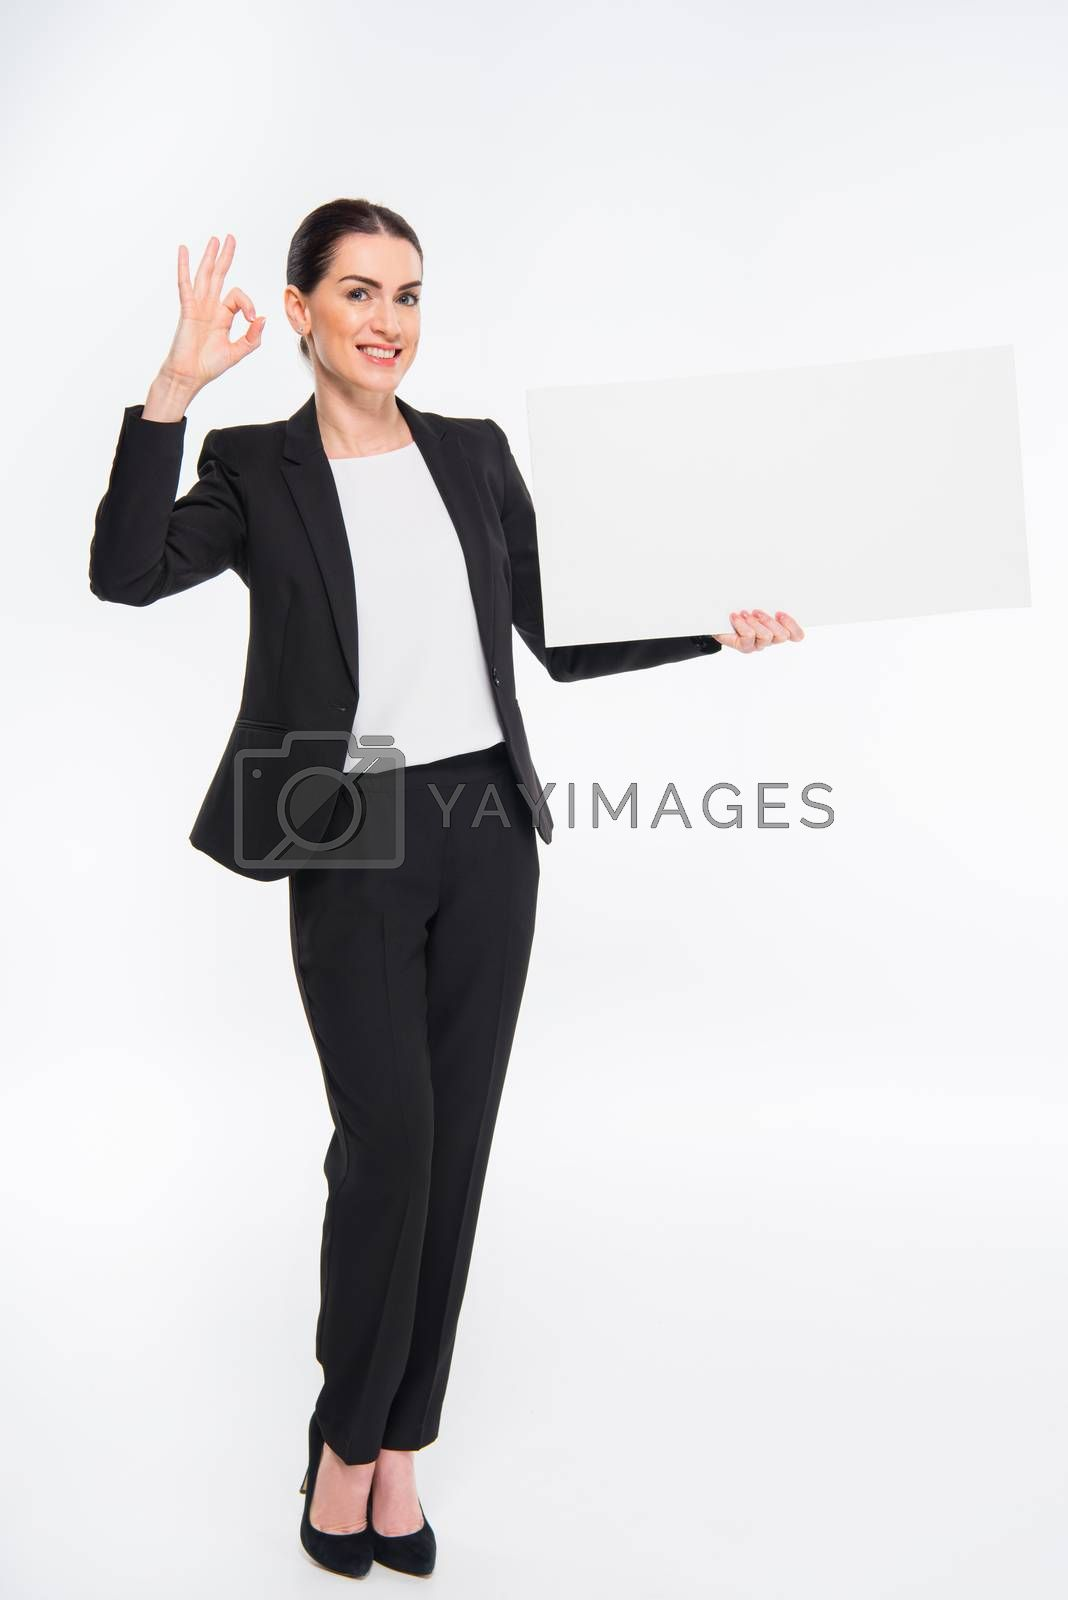 Royalty free image of Businesswoman holding blank card by LightFieldStudios